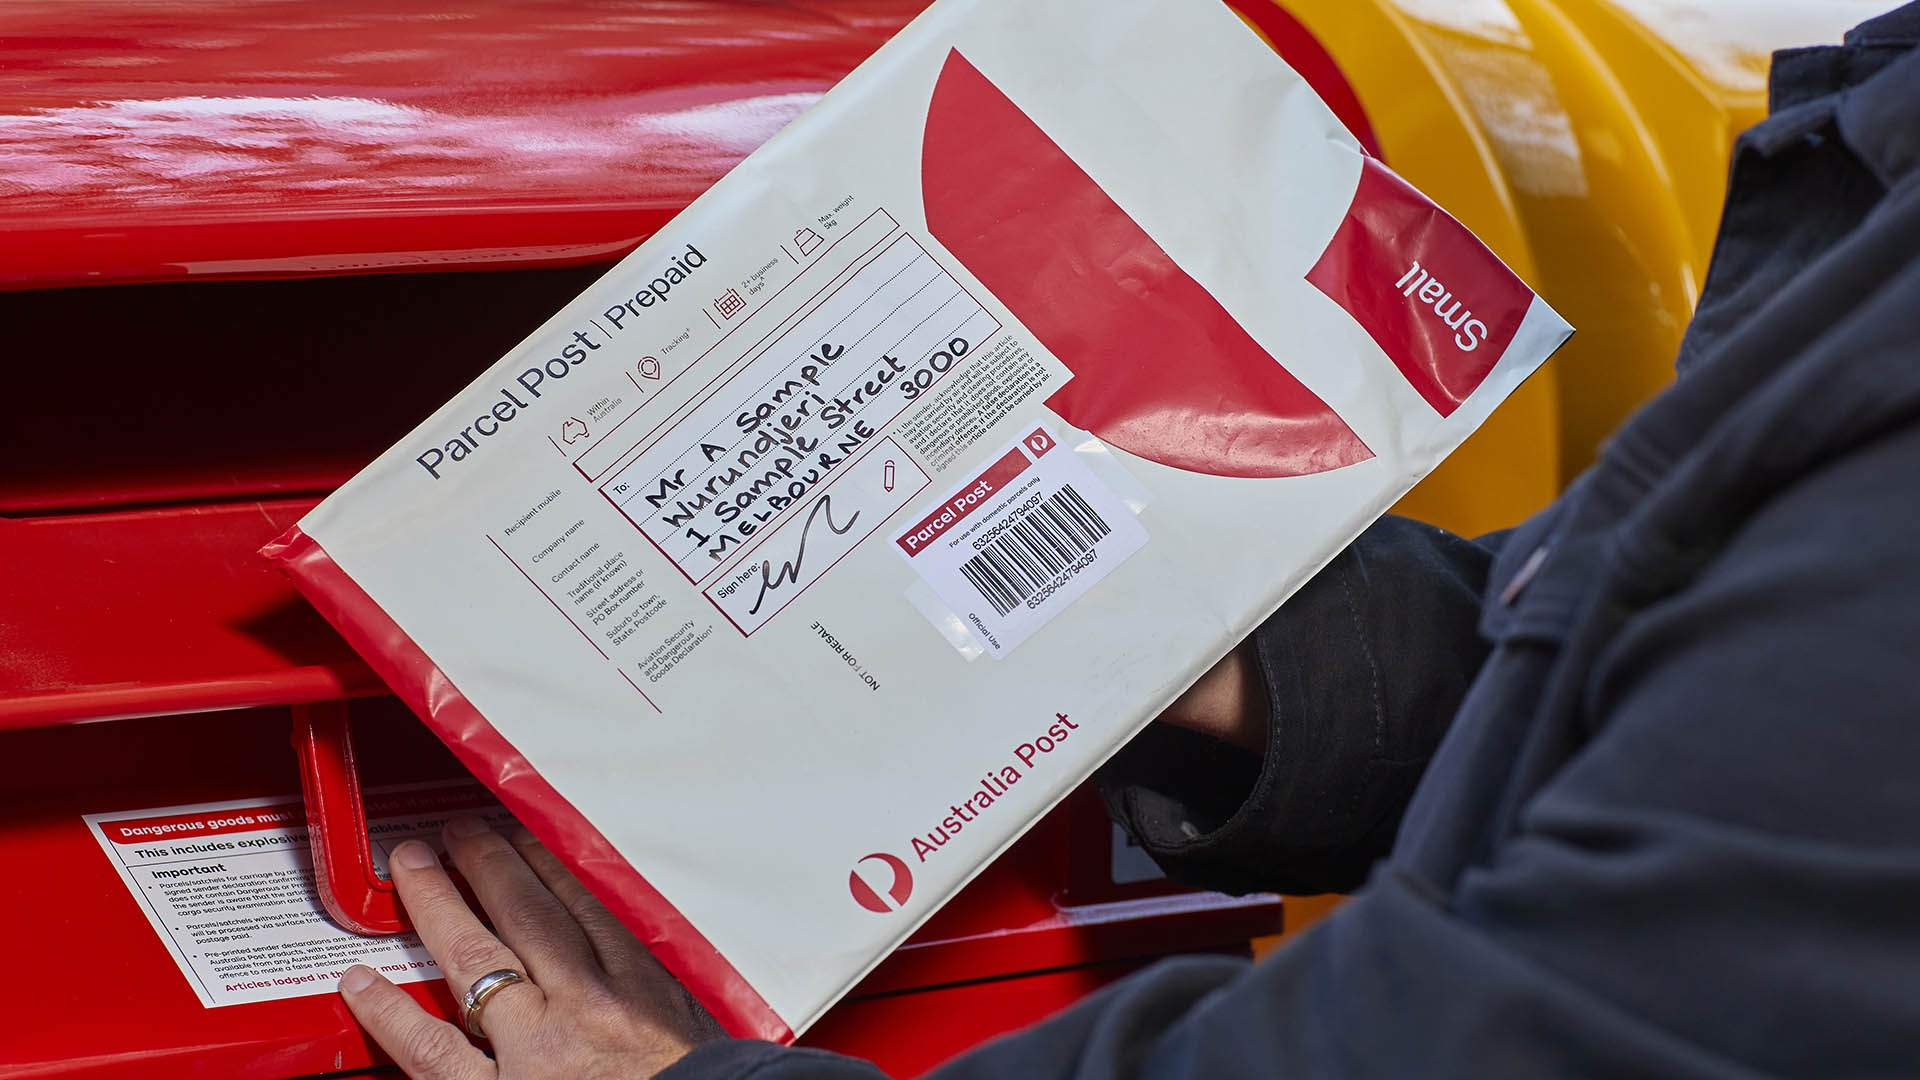 Australia Post Has Revamped Its Parcel Packaging to Include Traditional First Nations Place Names